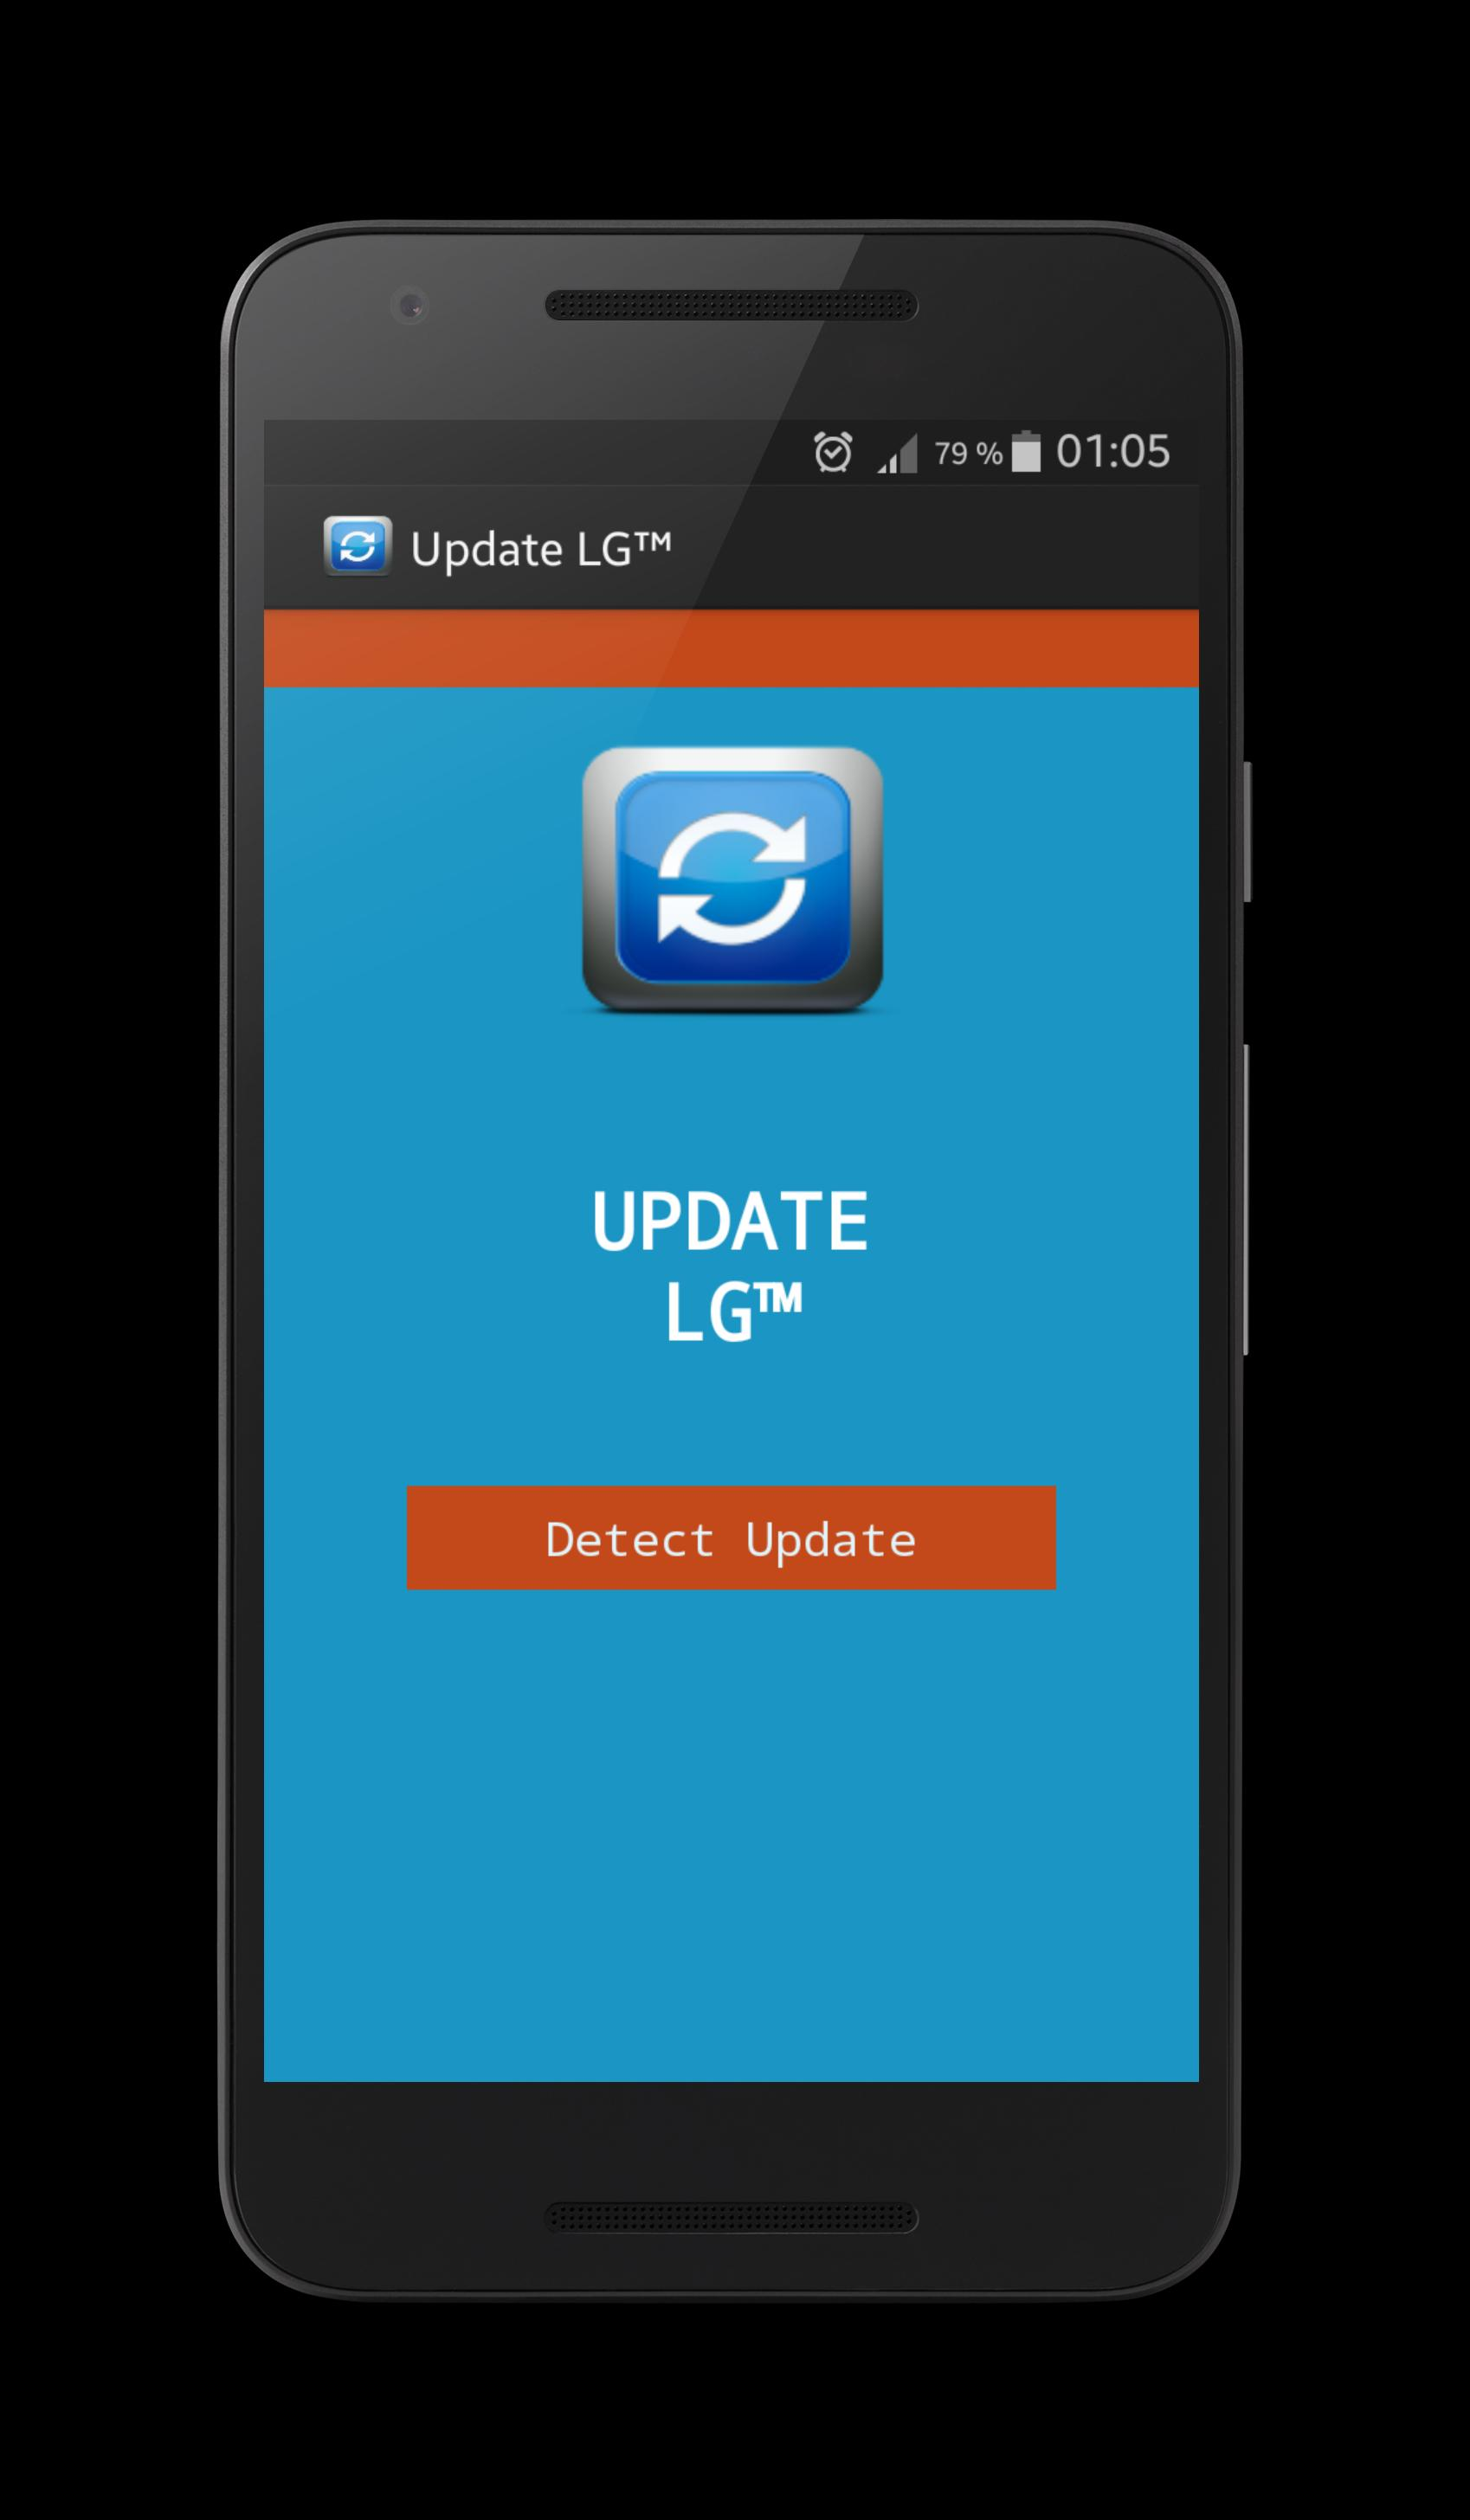 Update LG™ for Android for Android - APK Download